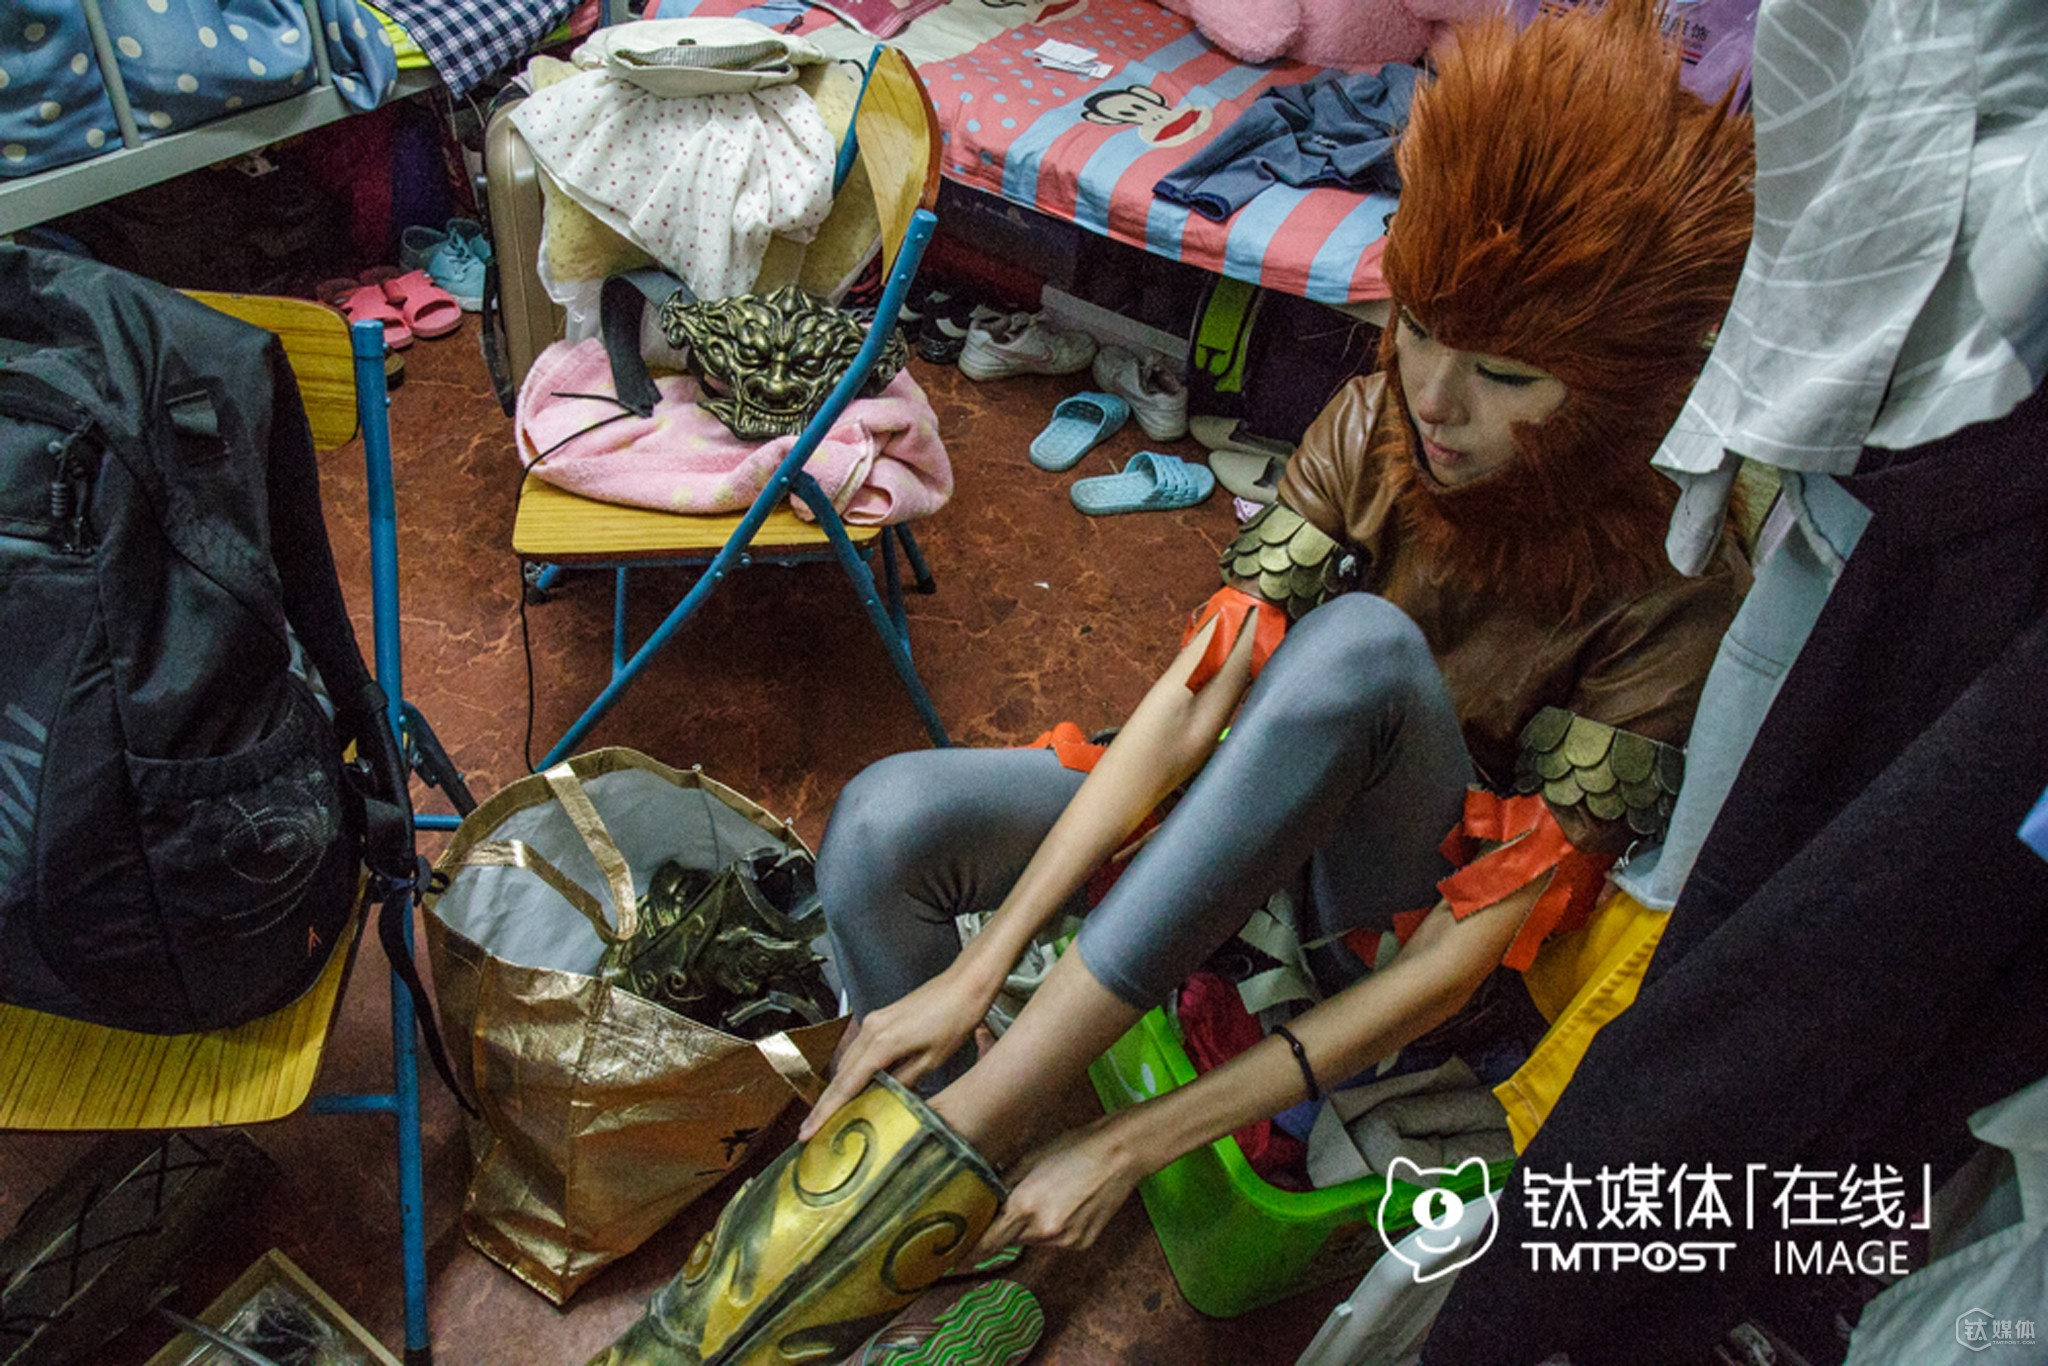 Lusan was highly-recognized in the cosplay circle for the verisimilitude when she dressed up like the character Great Monkey King. In addition, she's over 10.8 meters tall, which gave her an advantage to play Great Monkey King.